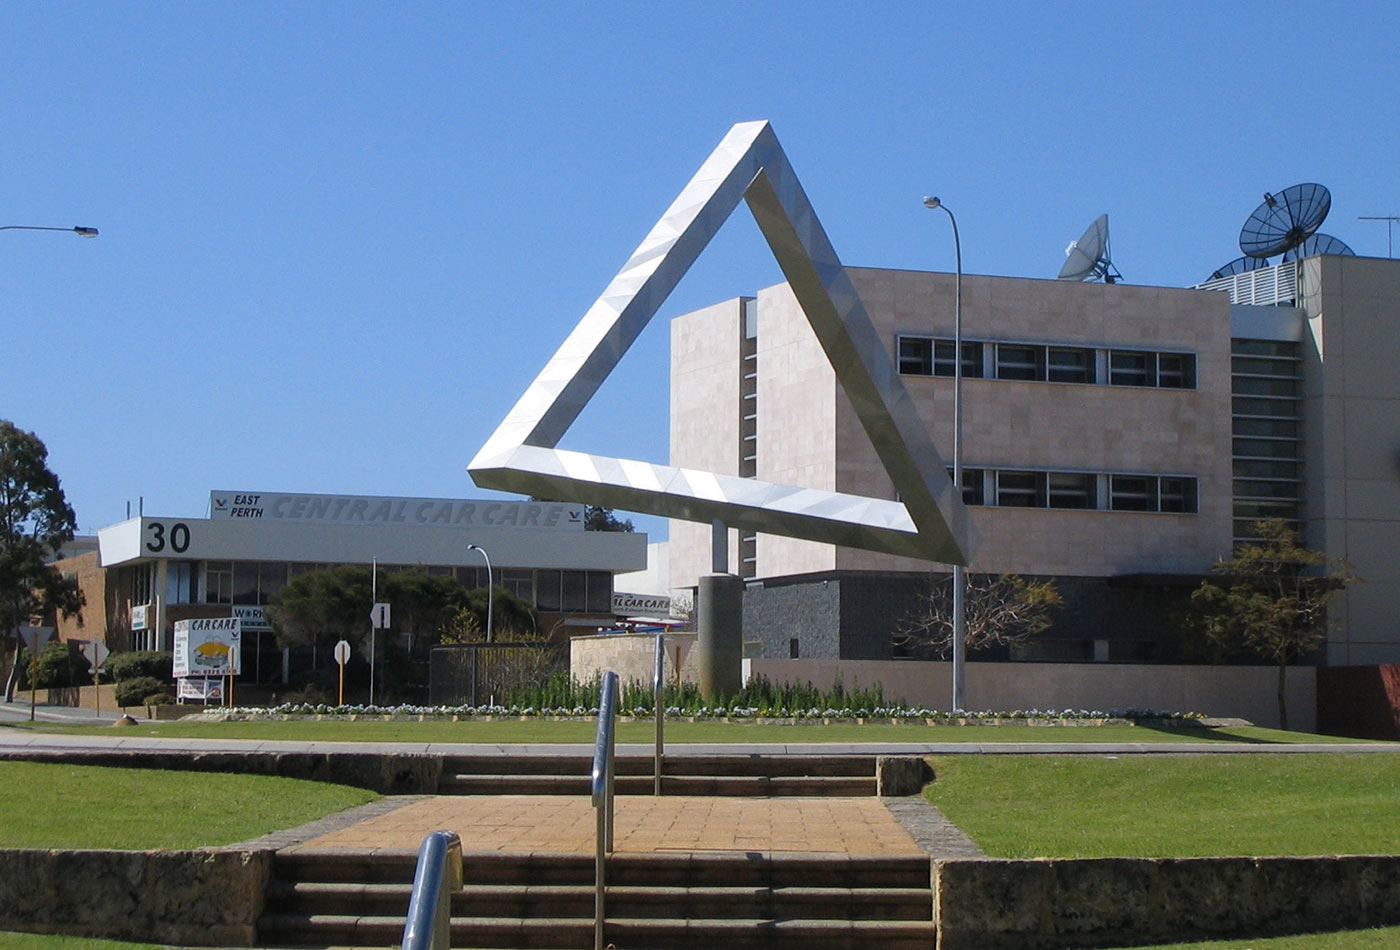 """Impossible Triangle,"" sculpture by Brian MacKay and Ahmad Abas, Claisebrook roundabout, East Perth, Western Australia."